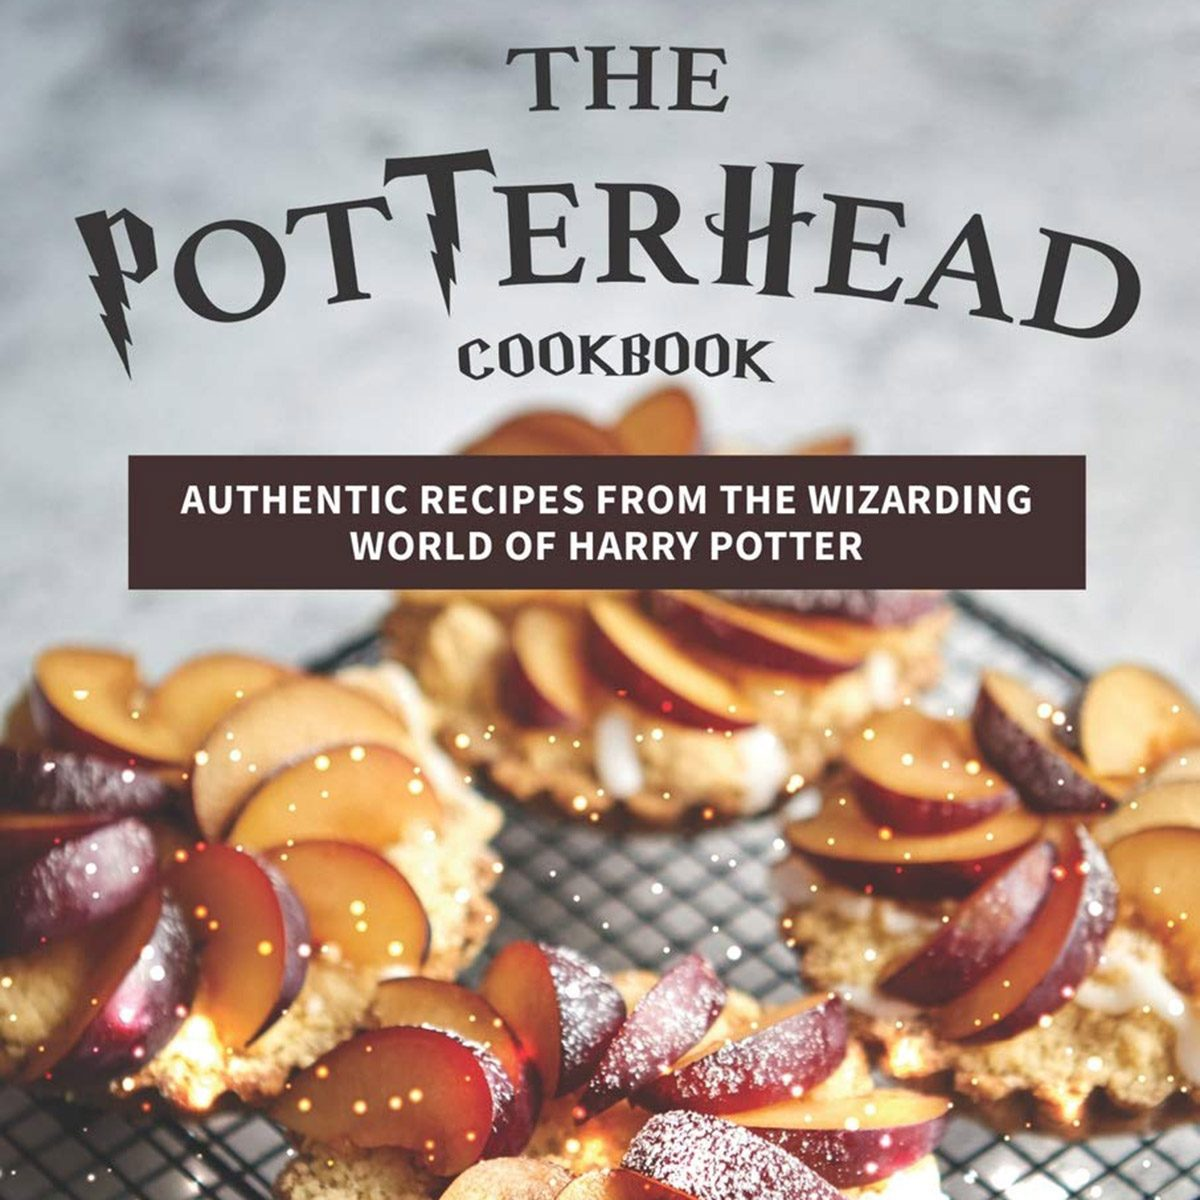 The Potterhead Cookbook: Authentic Recipes from the Wizarding World of Harry Potter